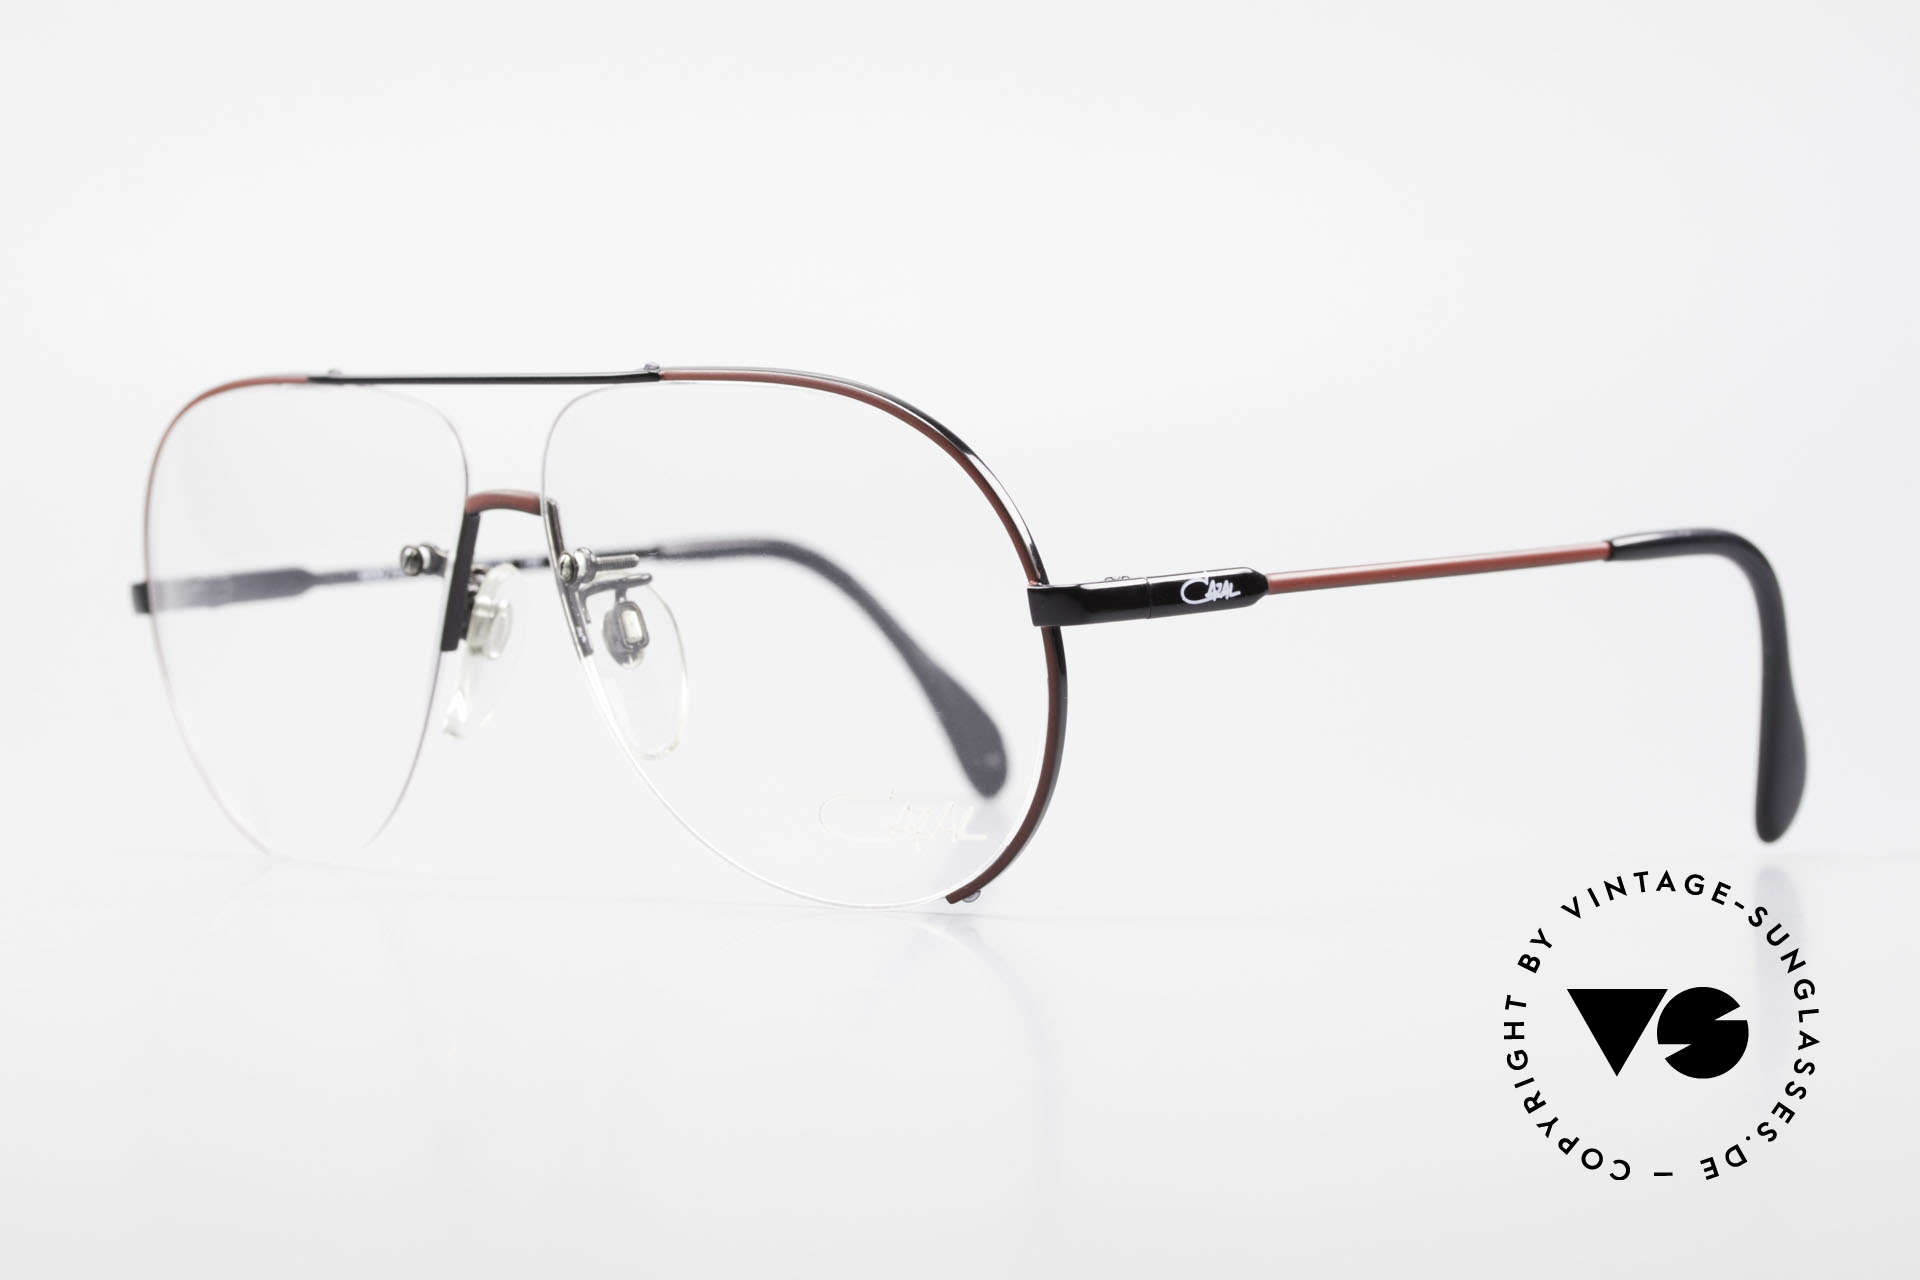 Cazal 723 Rimless 80's Aviator Glasses, the ordinary 'aviator style' interpreted by Mr. Cazal, Made for Men